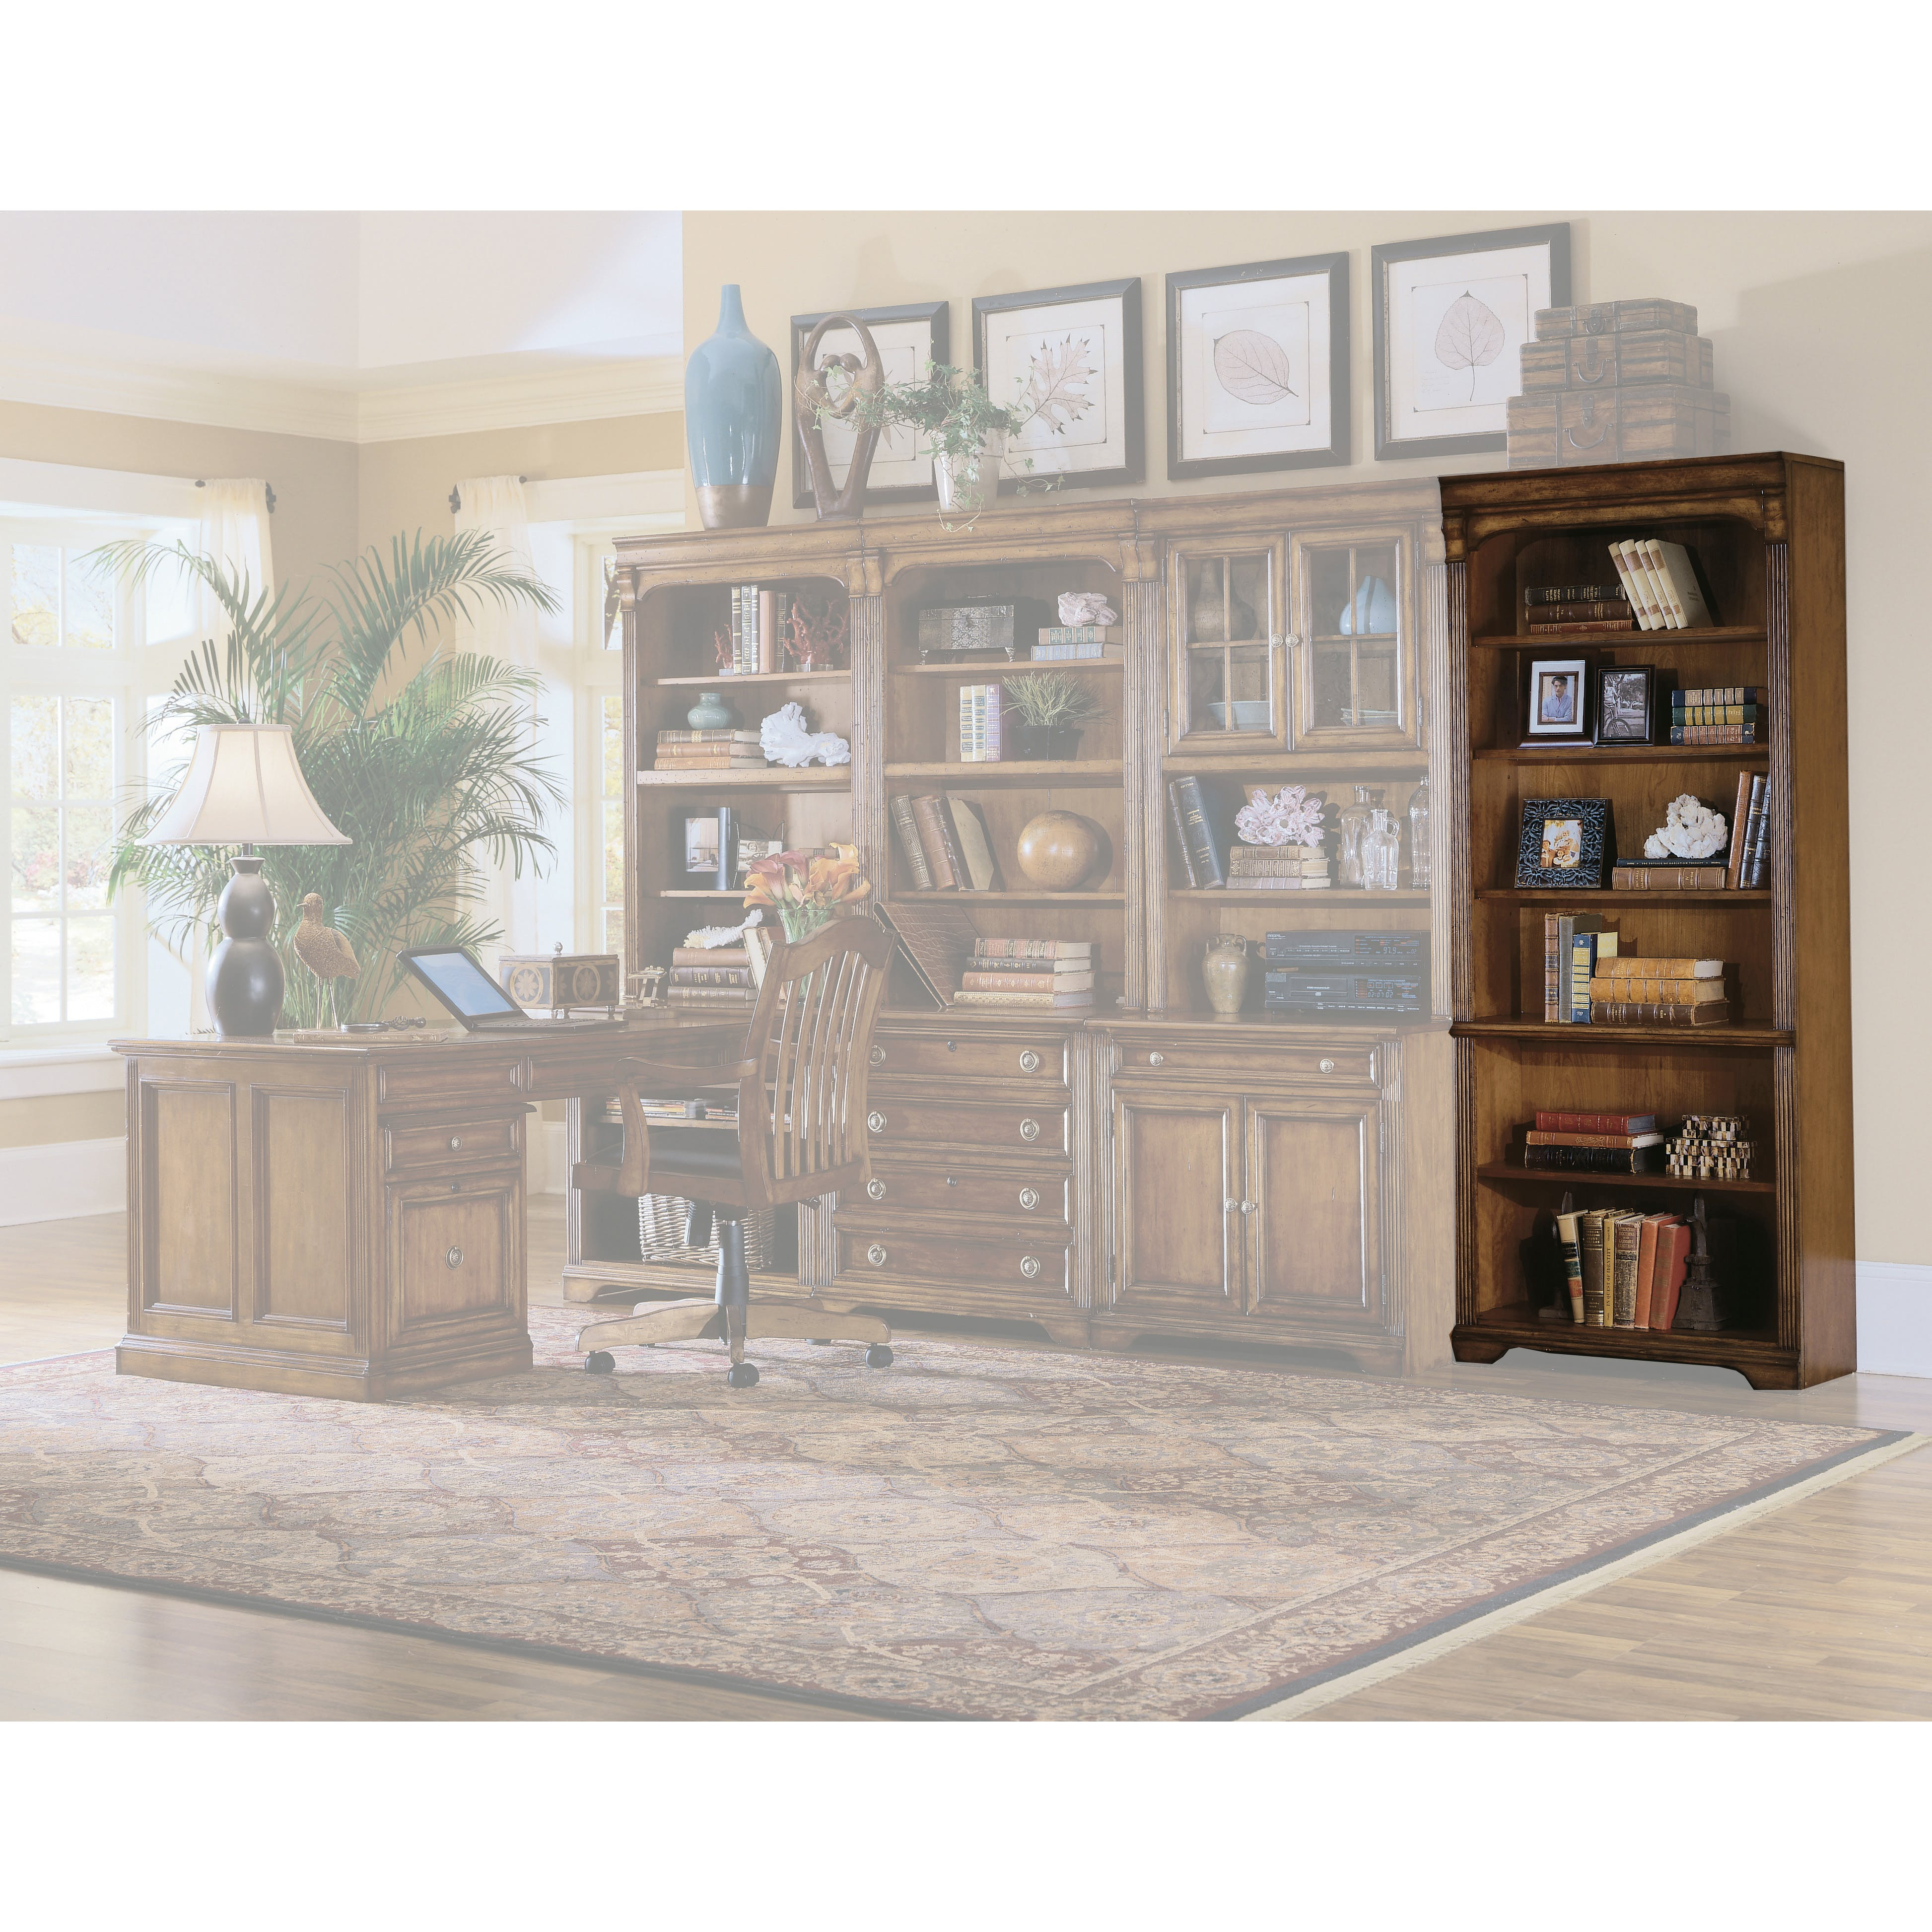 Bookcases Toronto Brookhaven Tall Bookcase 281 10 422 Furnishmyhome Ca